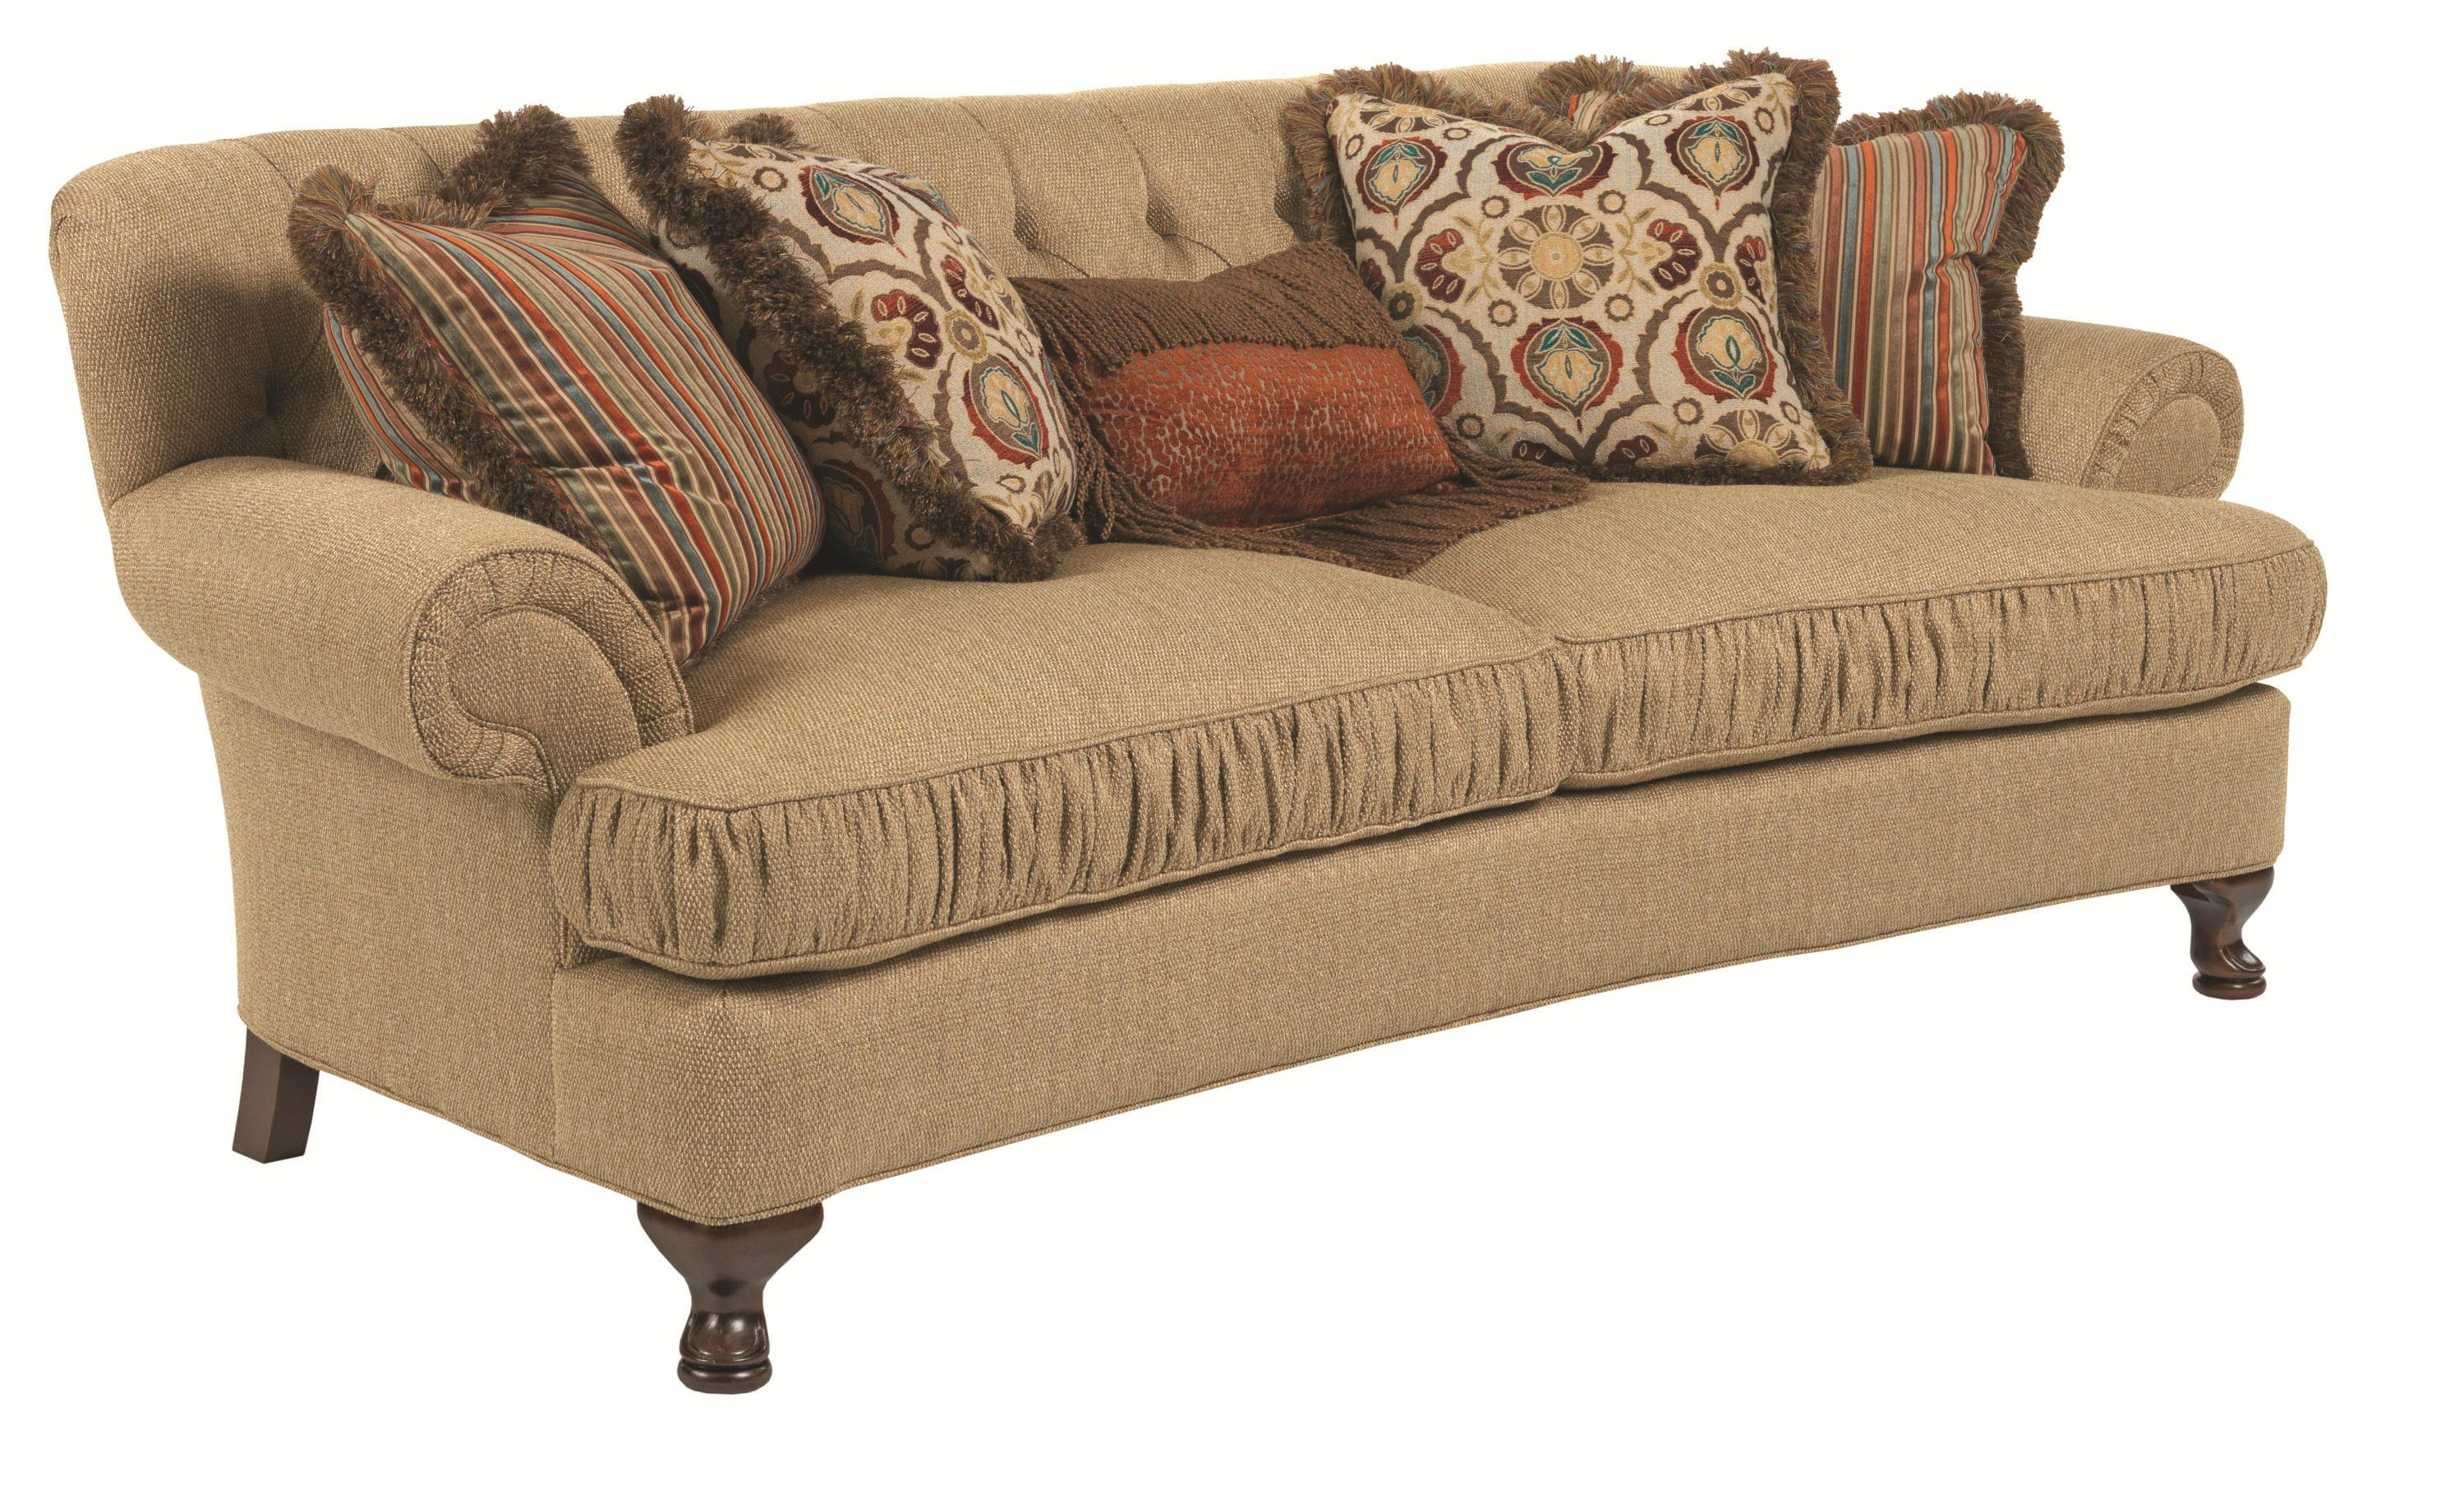 Traditional Conversation Sofa With Ruched Cushions And Cabriole Legs